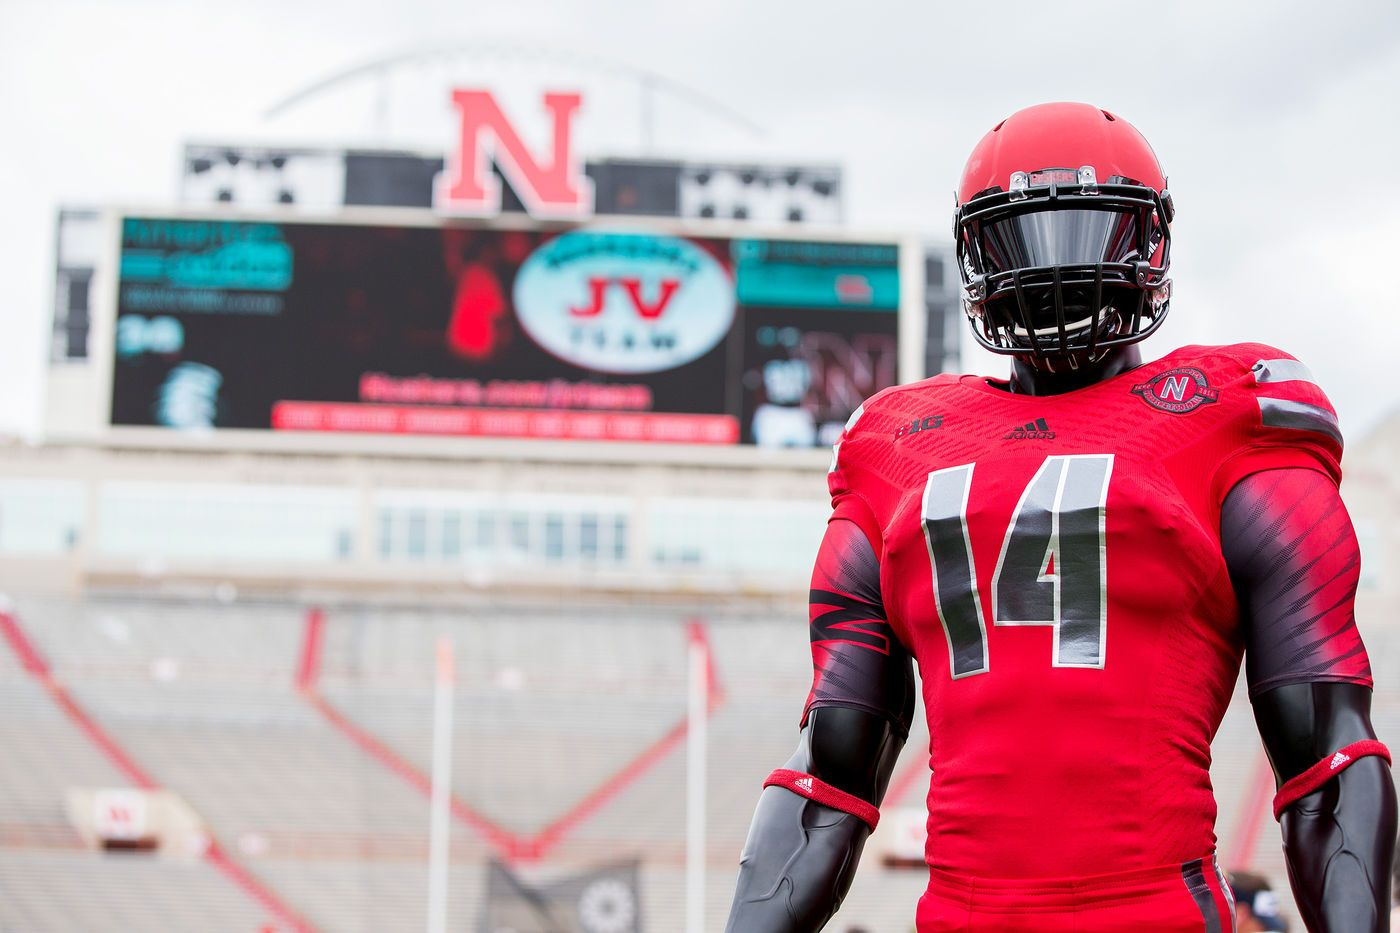 The 2014 Husker alternate uniform is on display during